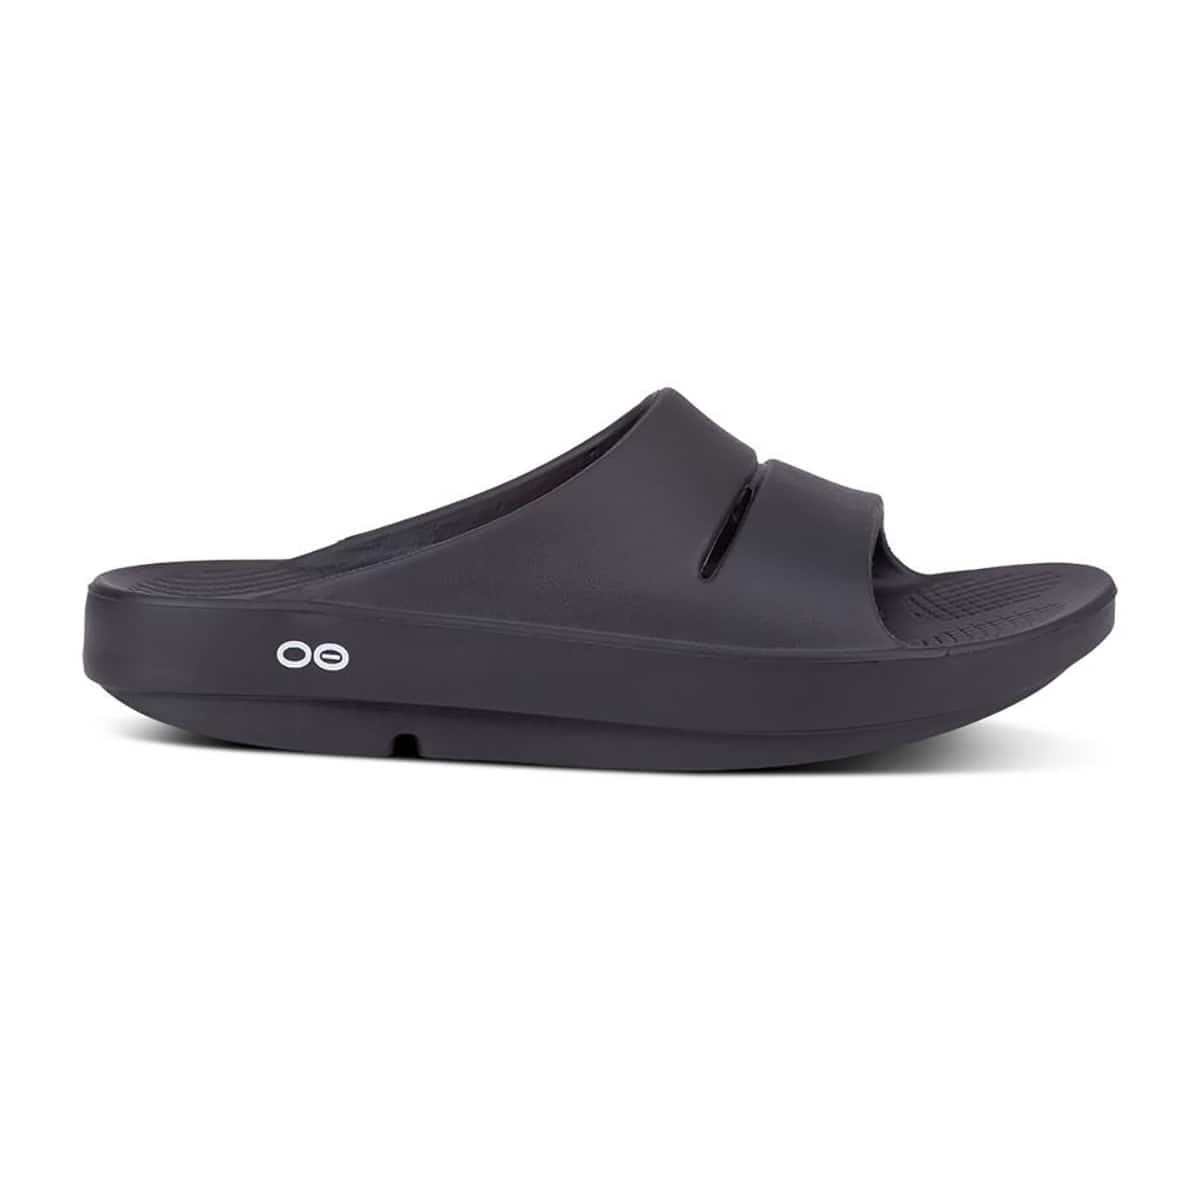 Oofos - 50% Off OOriginal Thong Recovery Sandal $24.98 & More + Free Shipping